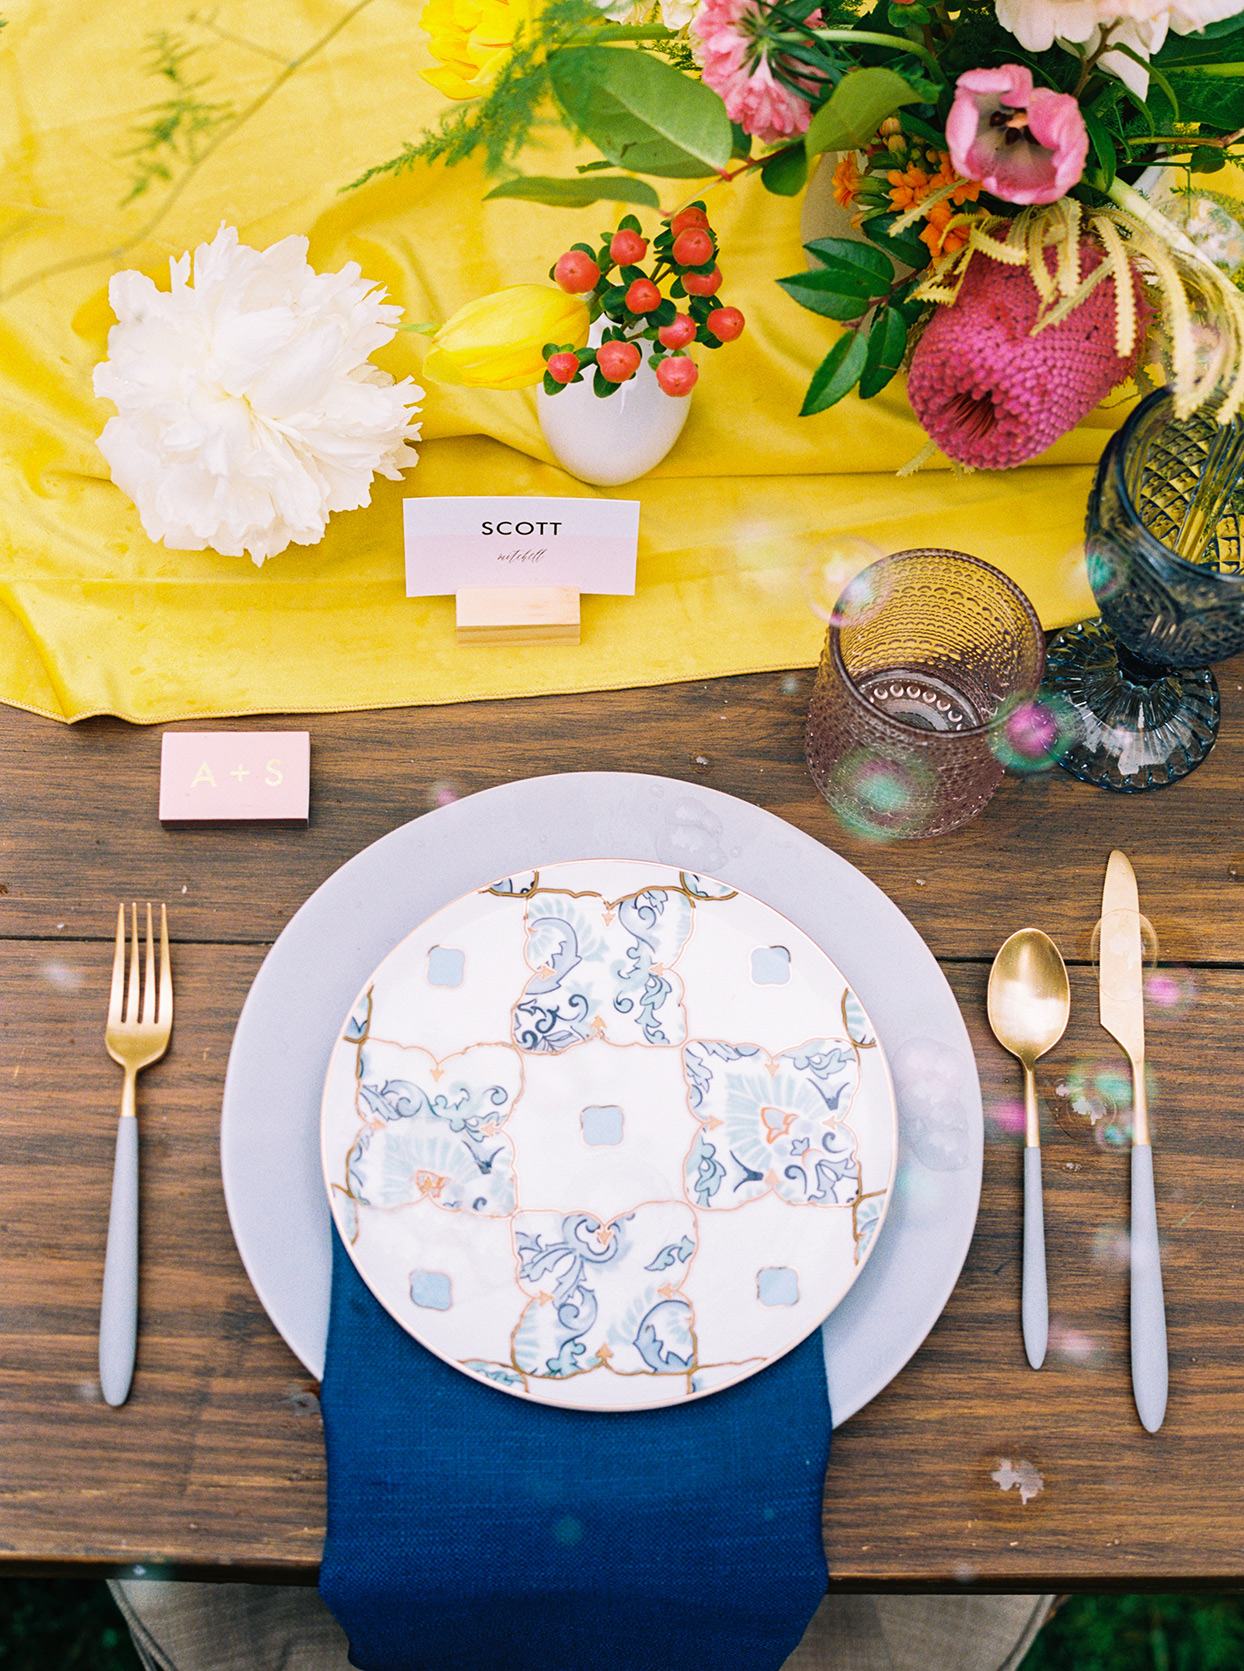 The Place Setting Details